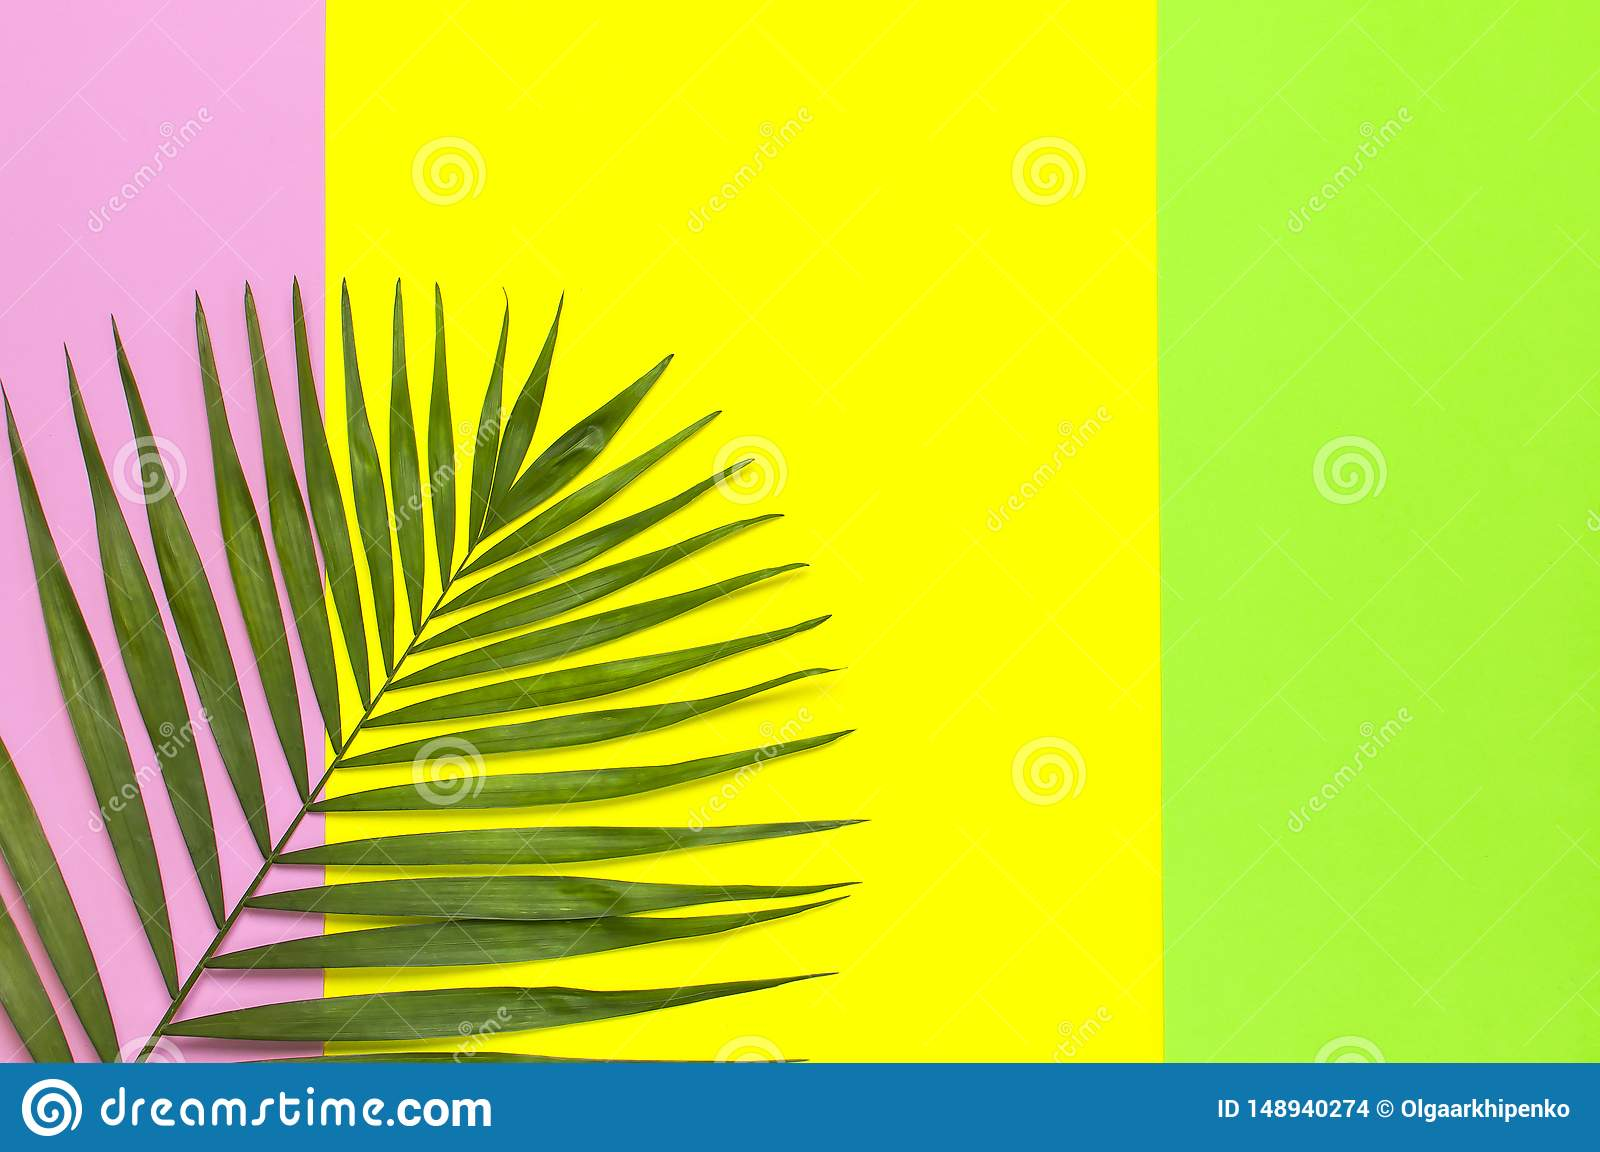 Tropical Palm Leaves On Bright Yellow Green Pink Background Flat Lay Top View Copy Space Summer Background Nature Creative Stock Photo Image Of Fashion Design 148940274 Free for commercial use no attribution required high quality images. dreamstime com